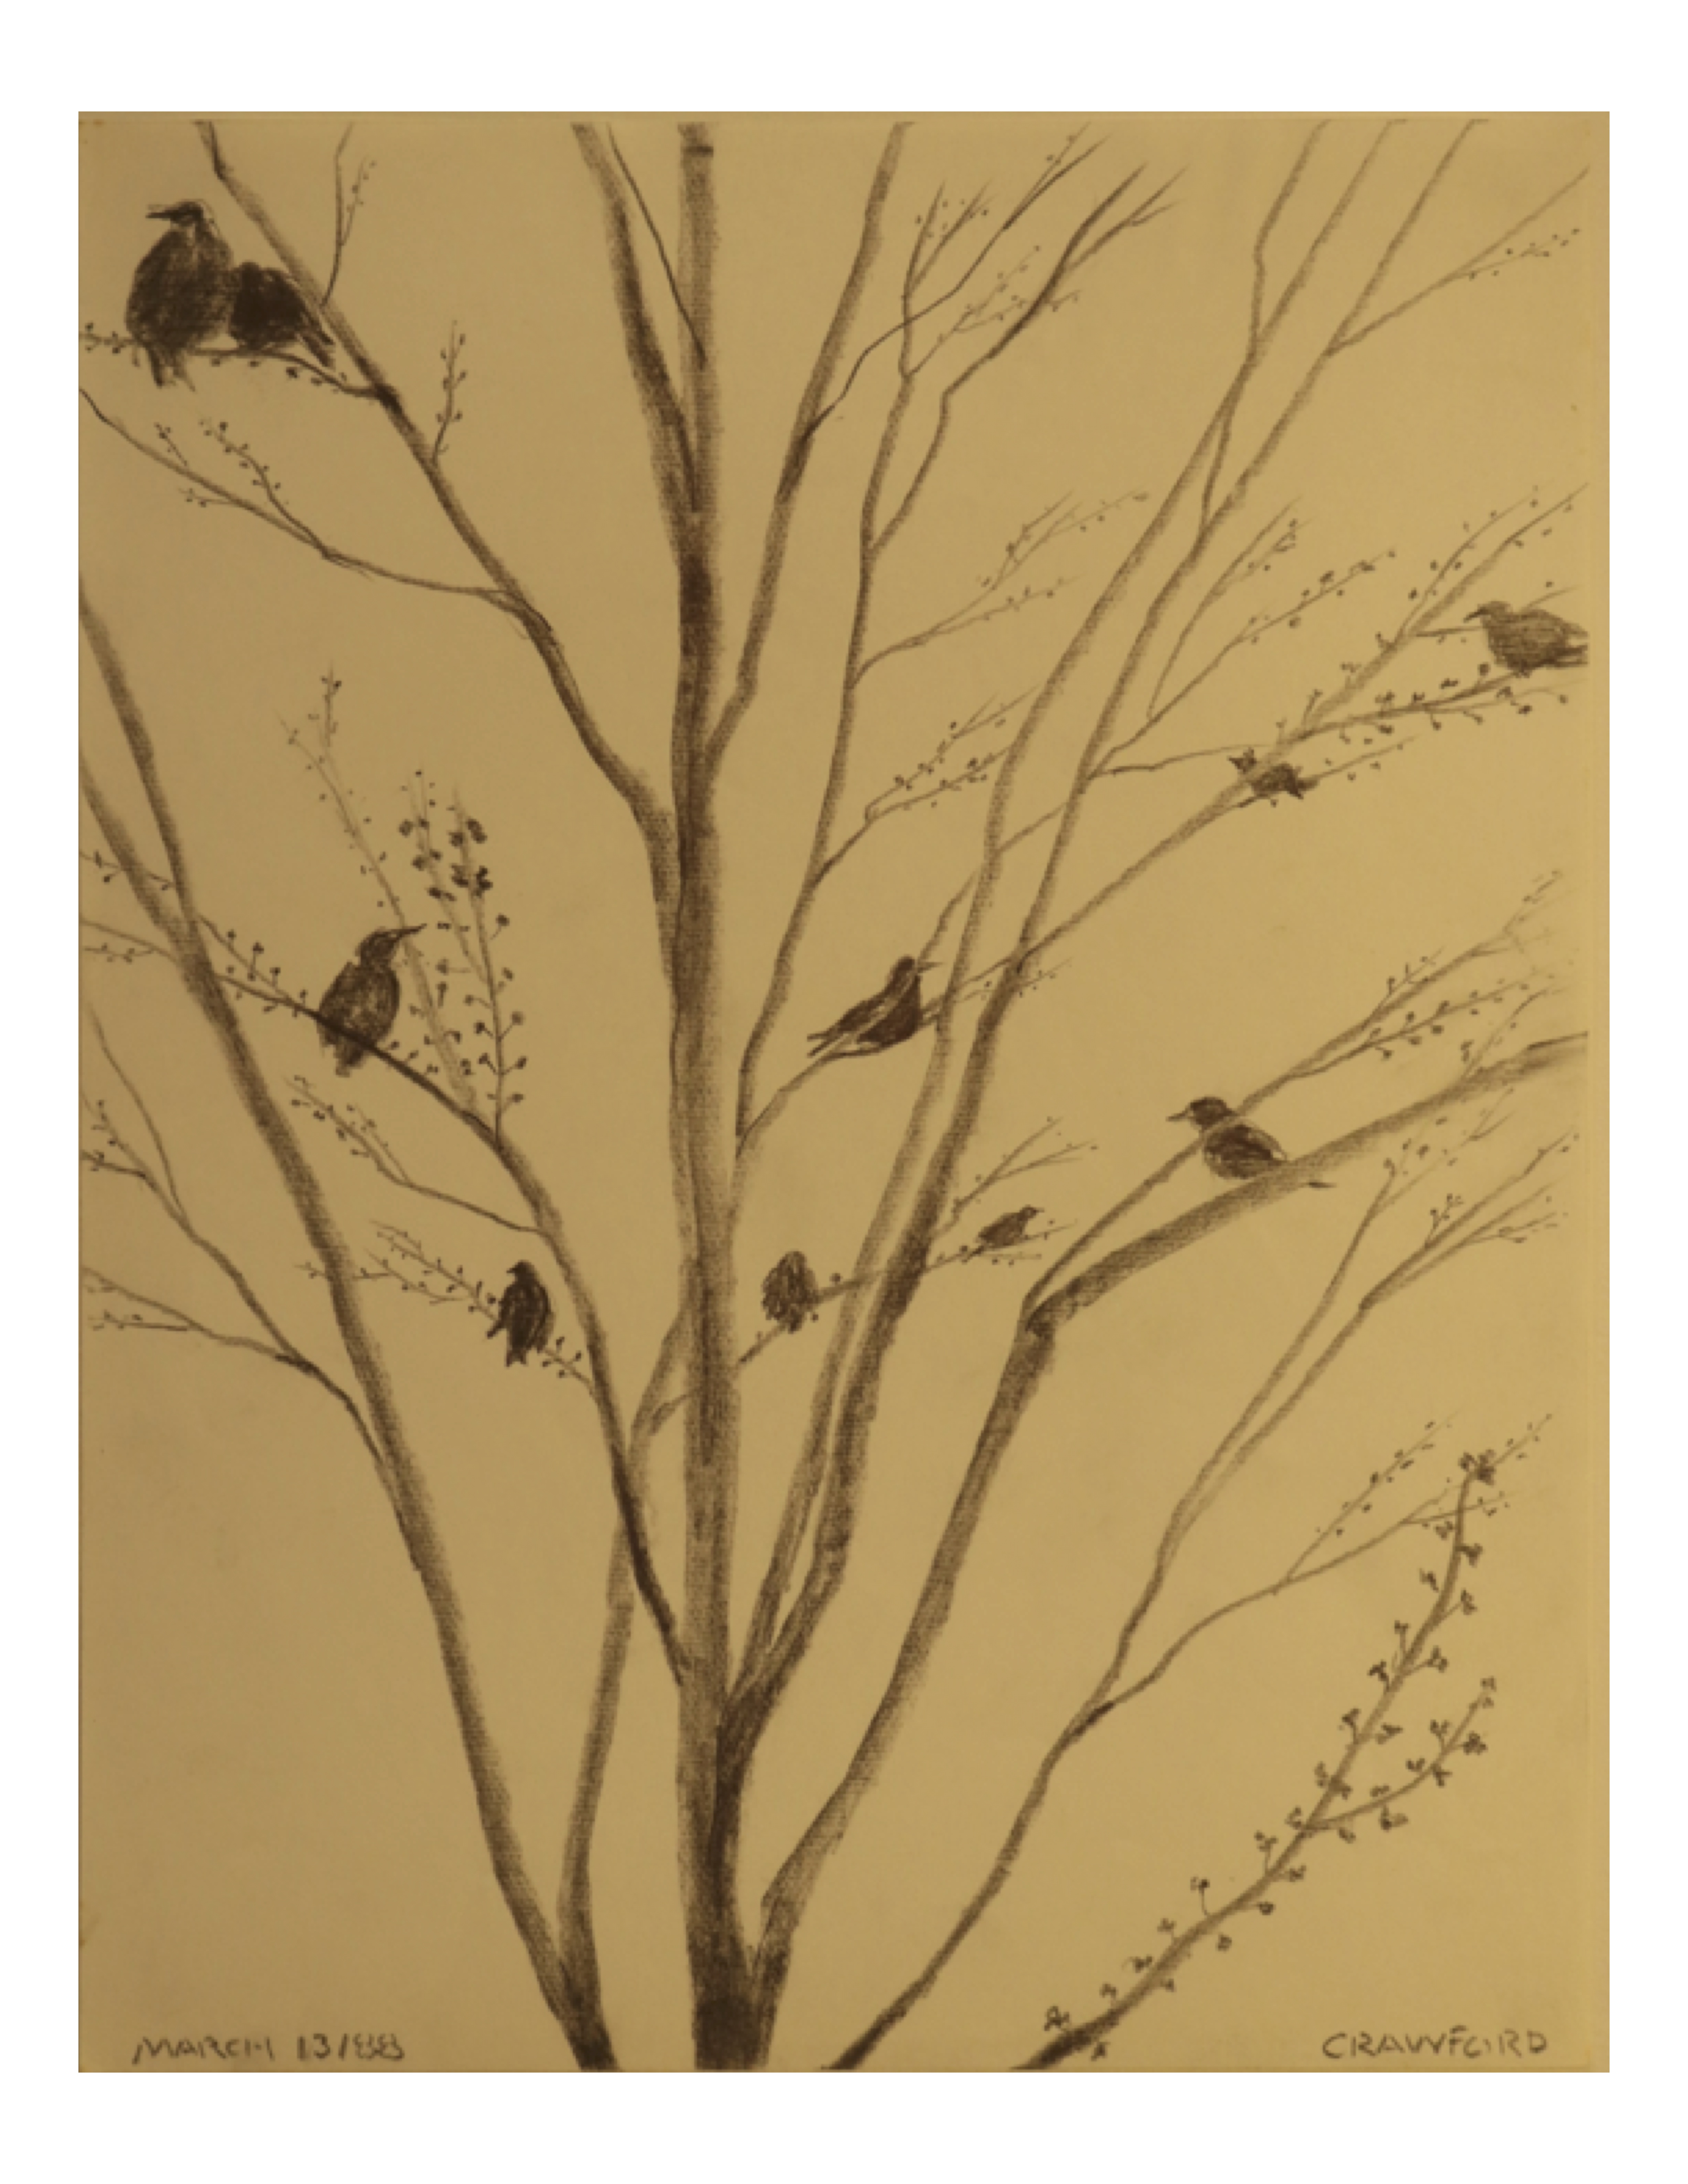 Birds in a tree - winter, March 13, 1988, pencil on paper, 21.5 cm x 28 cm